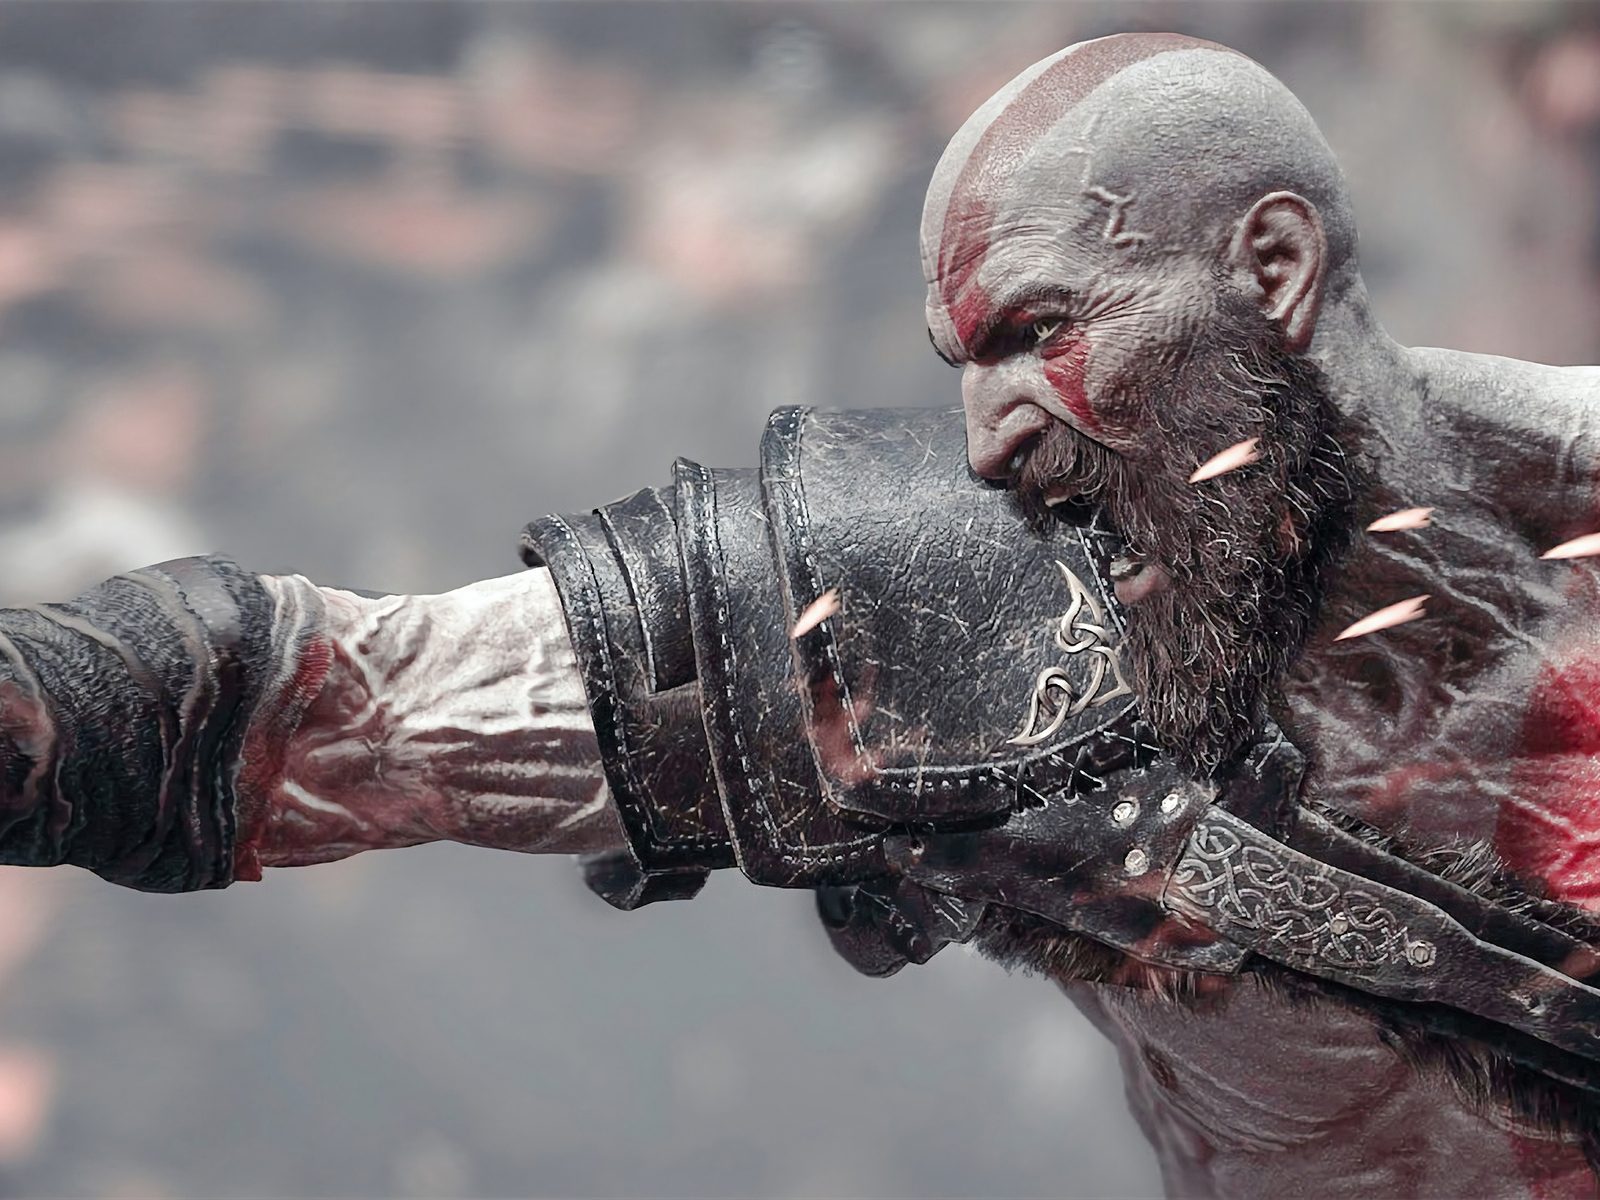 kratos-digital-art-4k-6r.jpg